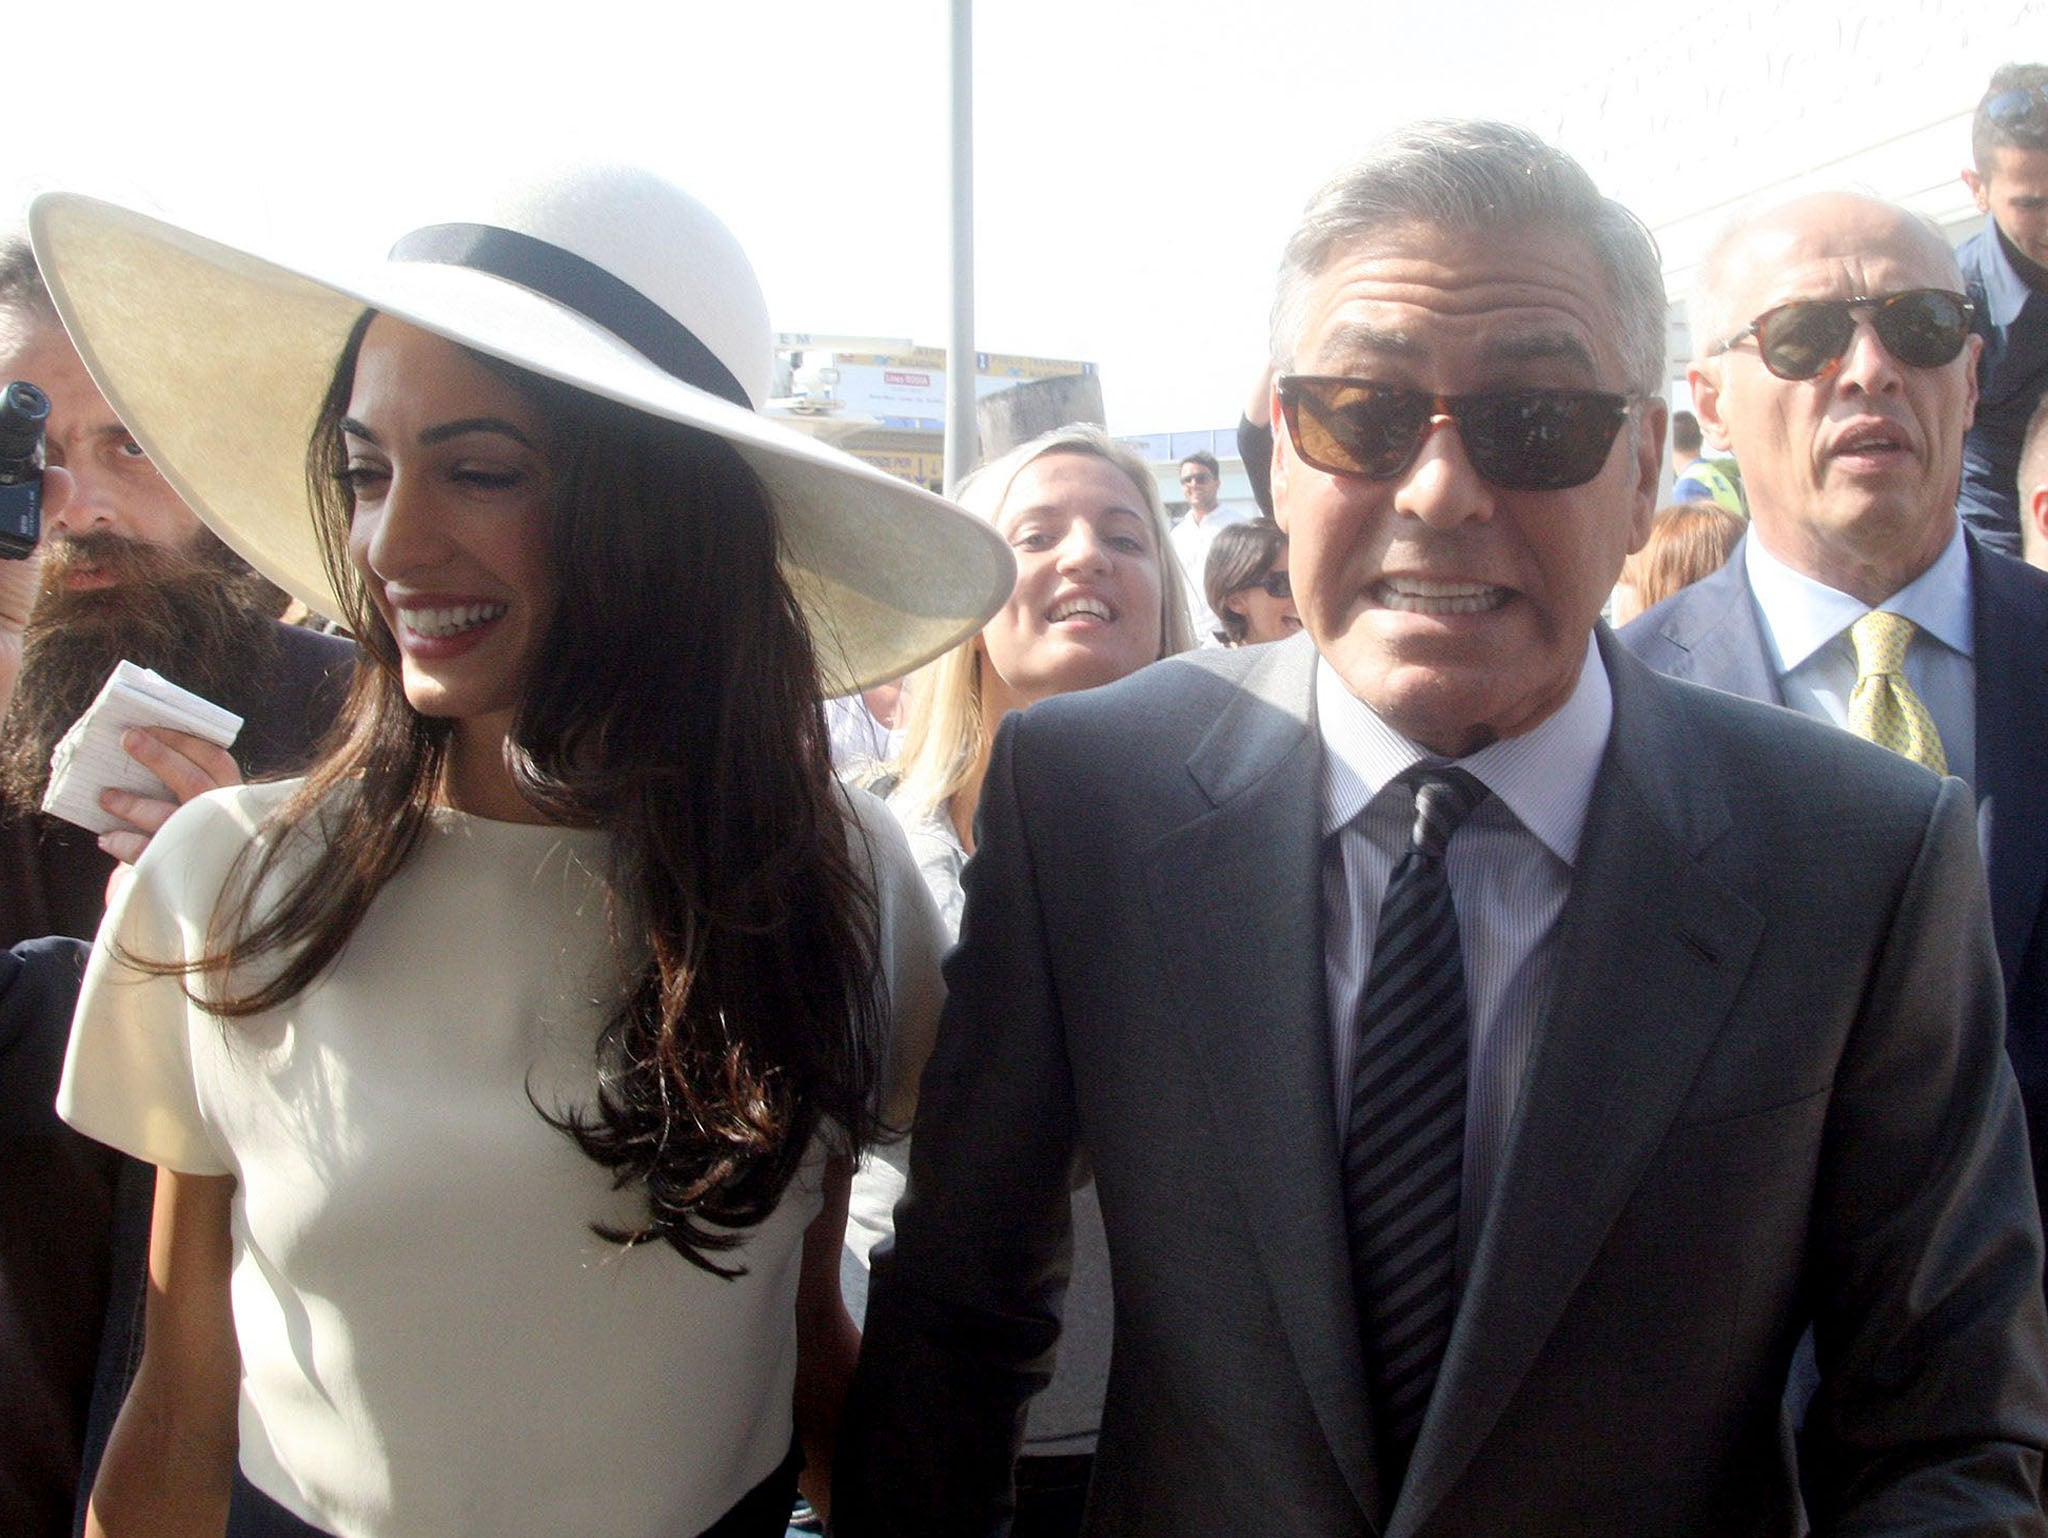 George Clooney and Amal Alamuddin choose Berkshire as their first home